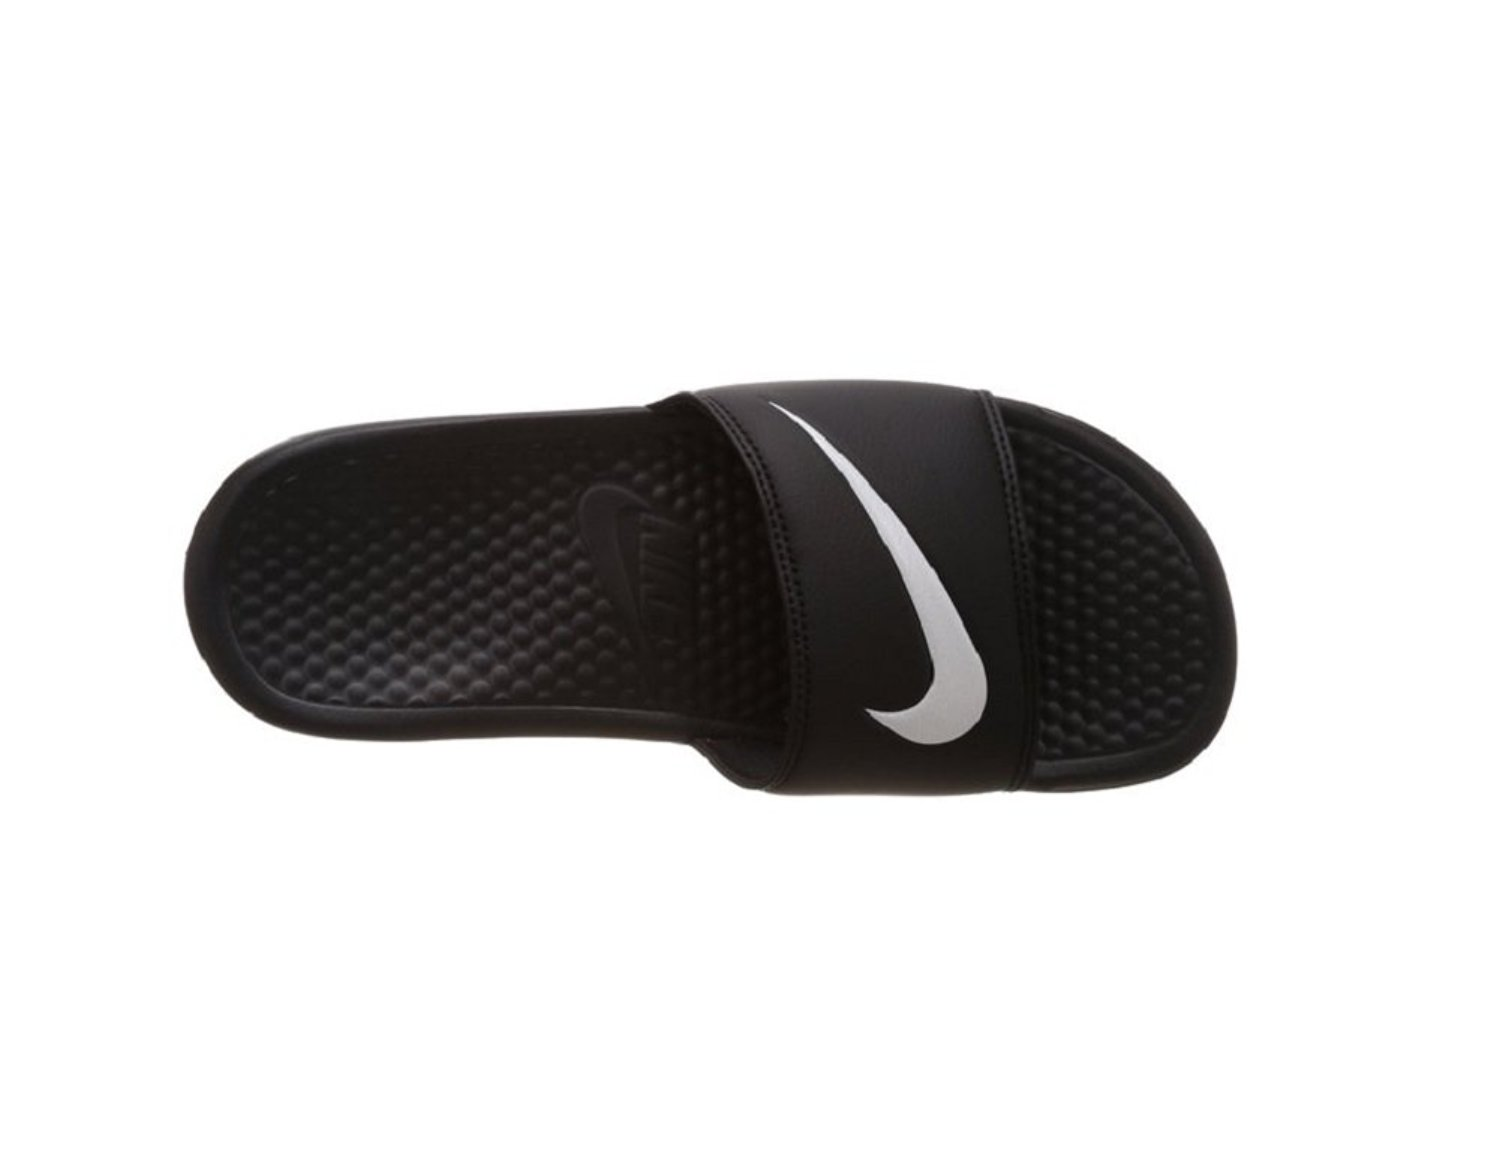 dbd7833fdd2b5 Amazon.com | Nike Womens Benassi Swoosh Slides #312432-010 (5) | Slippers